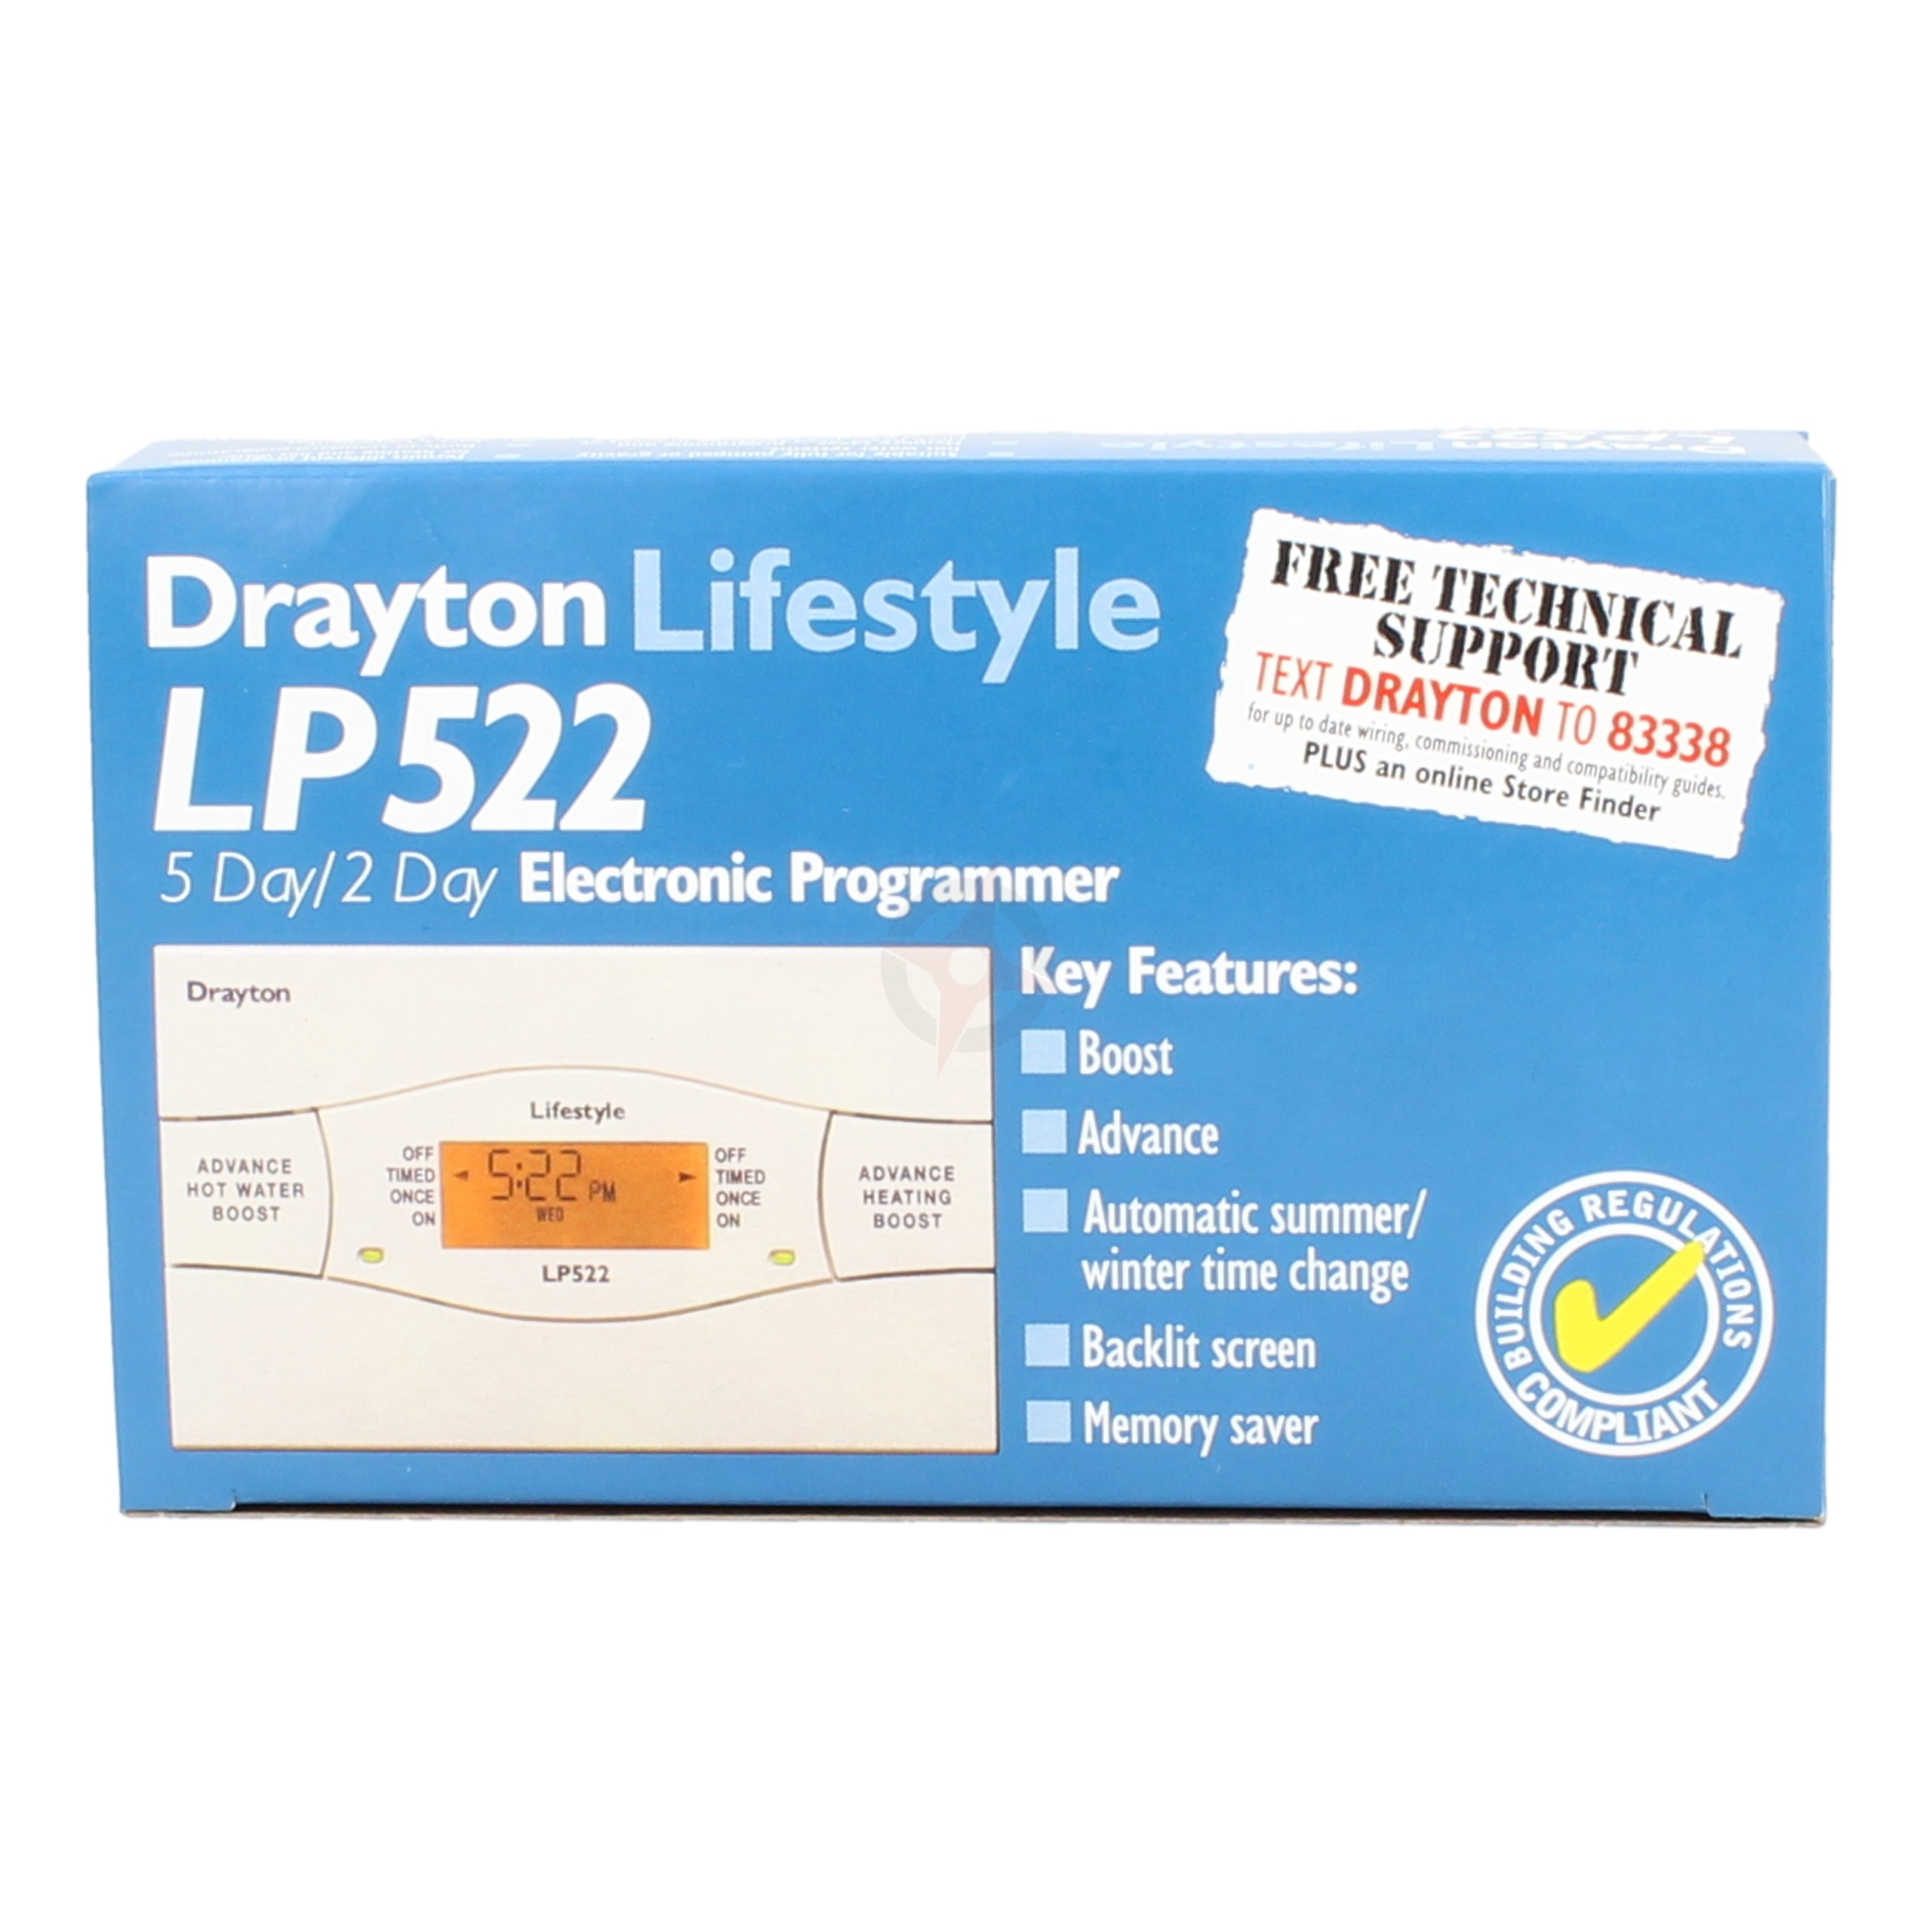 Drayton 5 Day/2 Day Electronic Programmer LP522